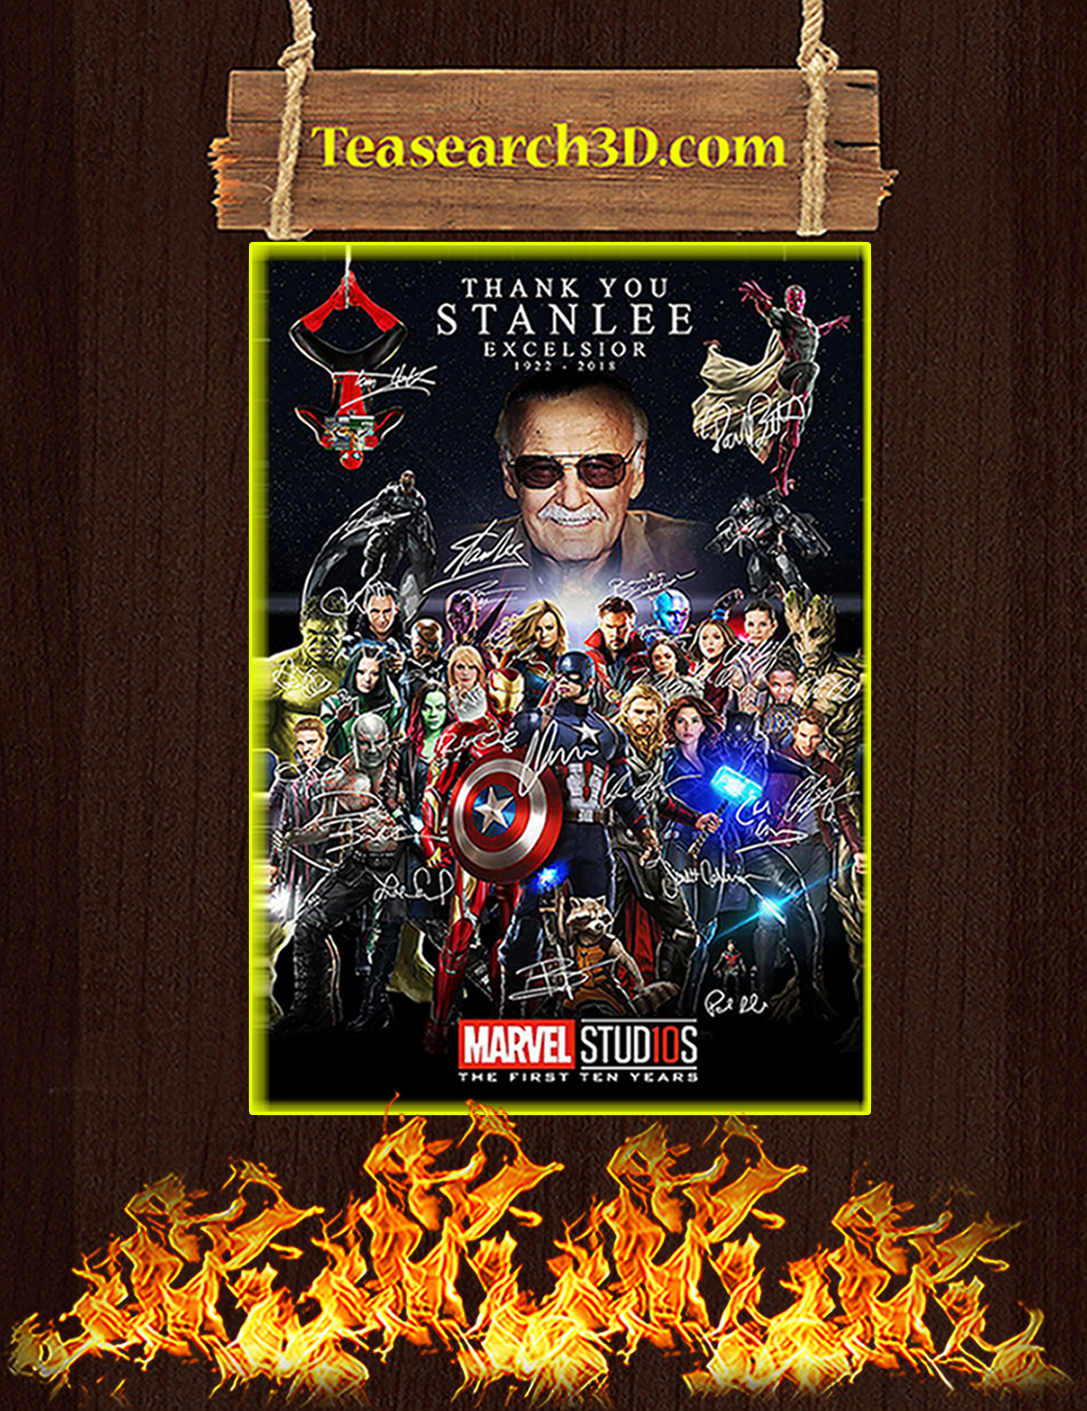 Thank you stanlee excelsior signature poster A2